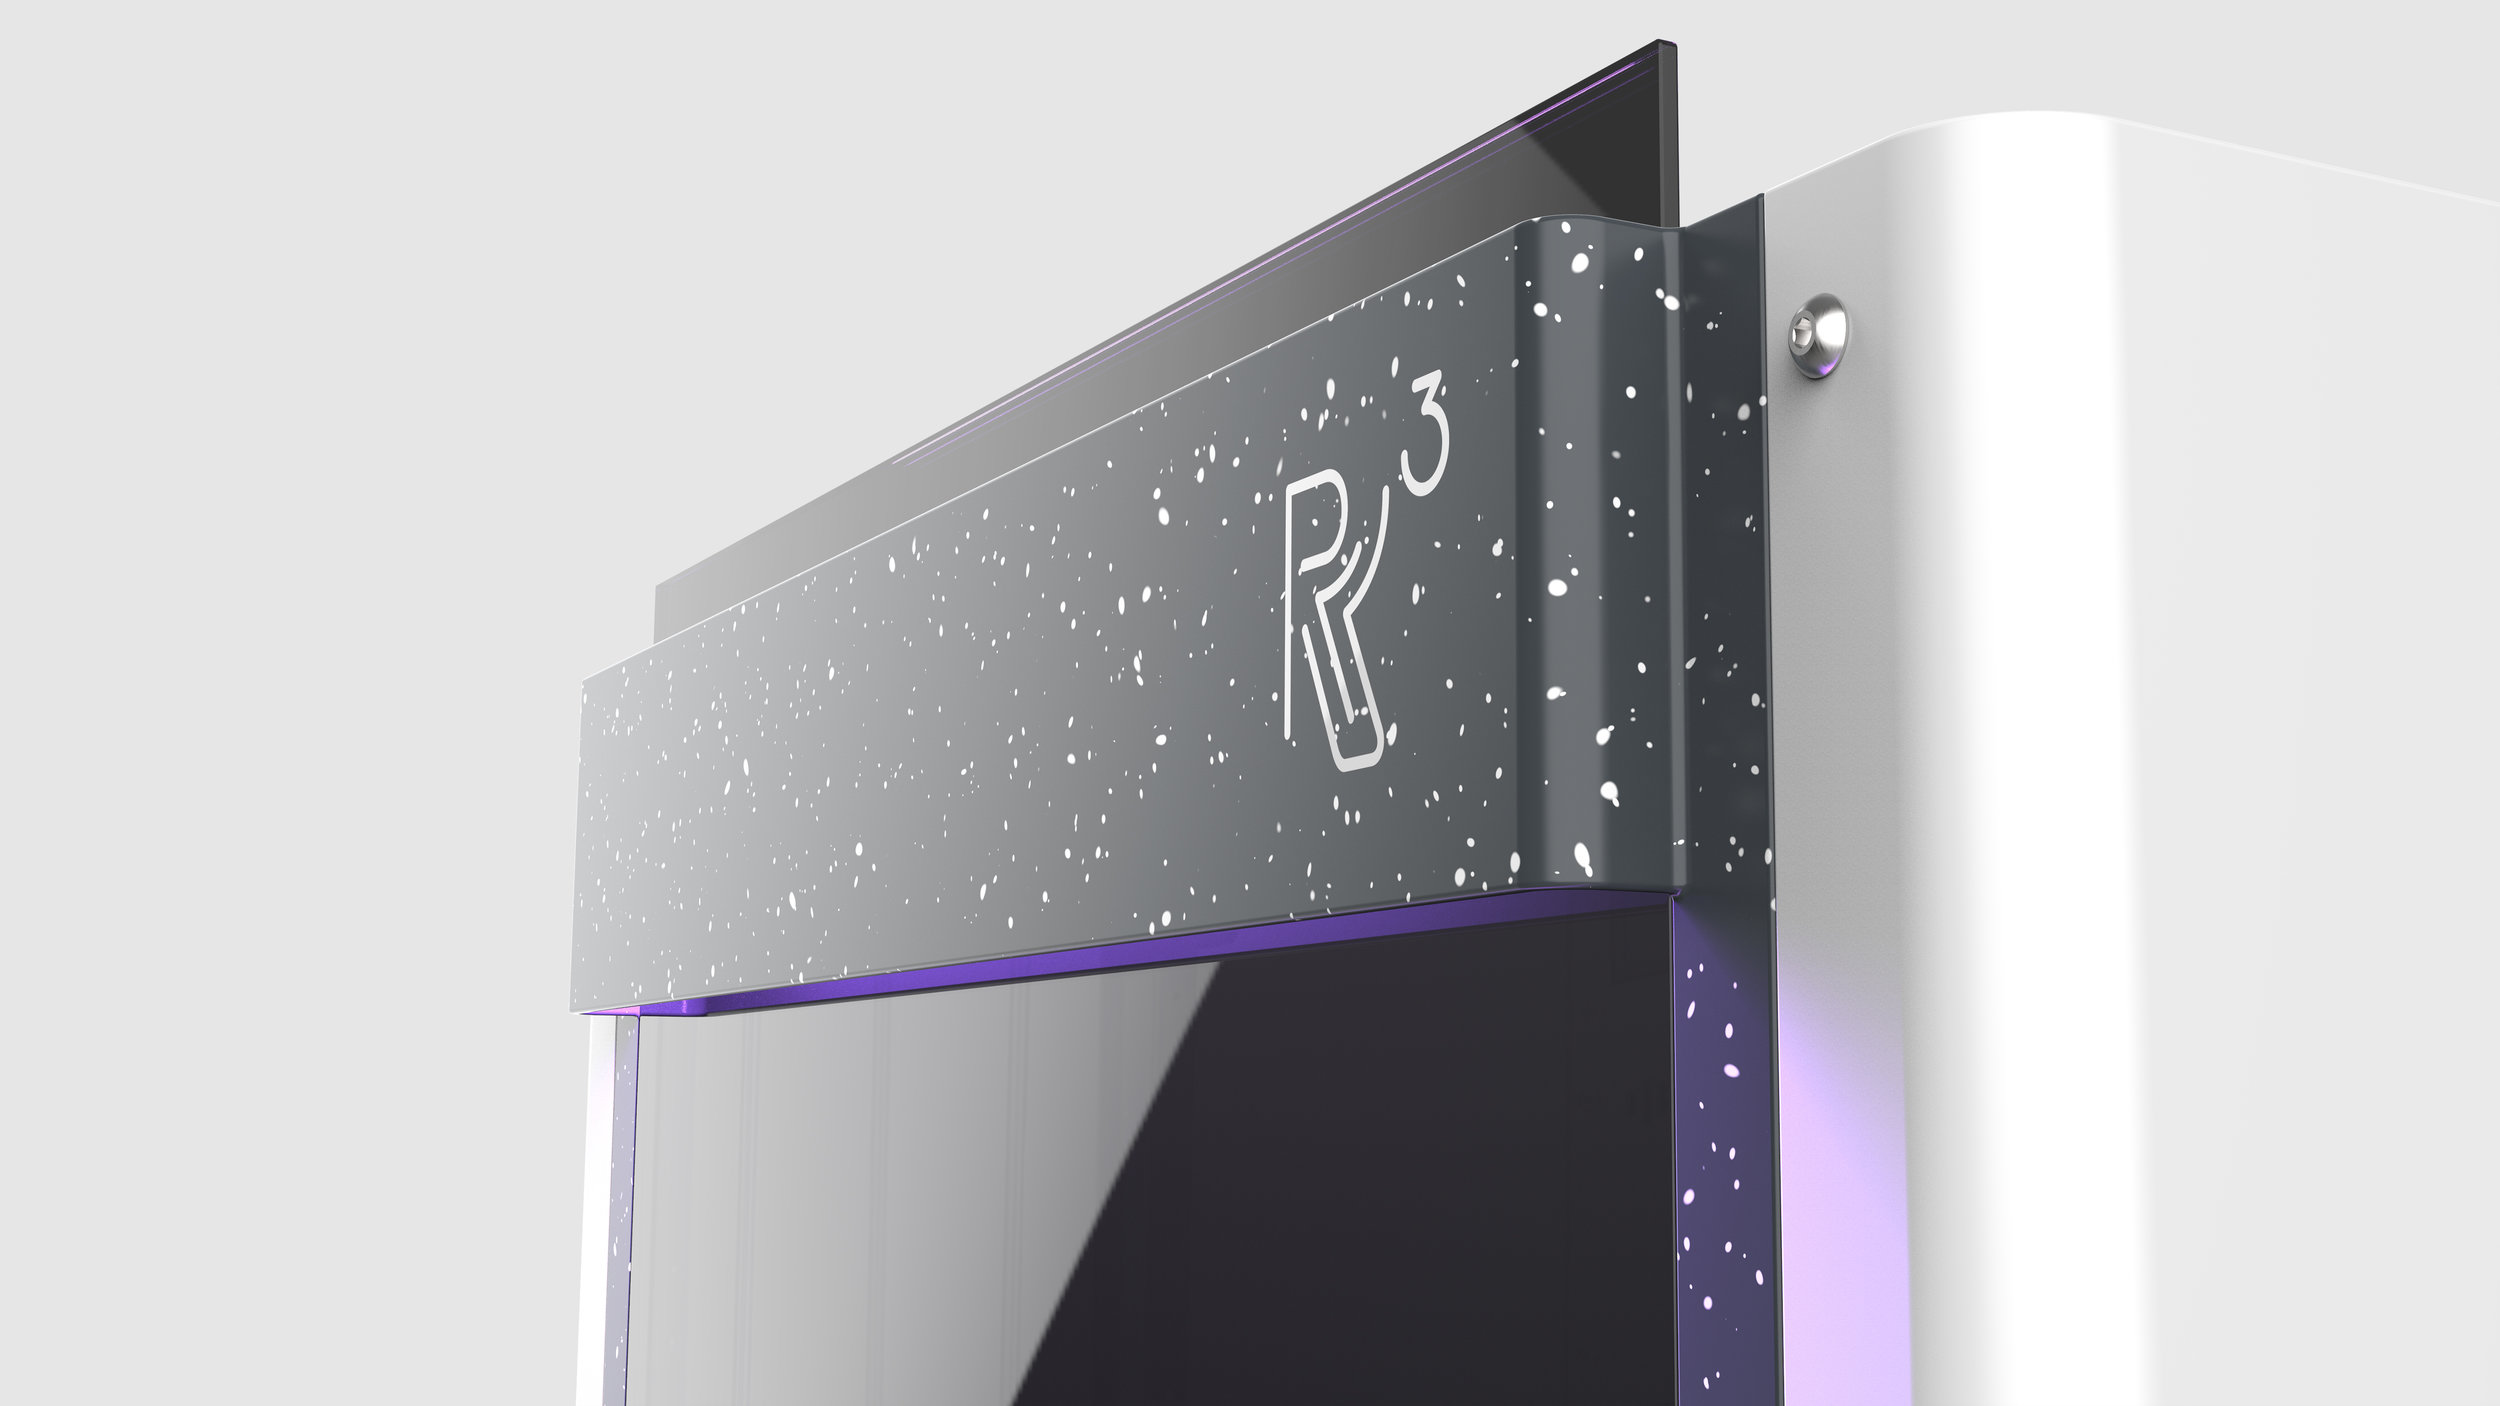 The R3 Printer is the next step in additive manufacturing. Designed solely with automation and reliability in mind, it's a standard-setting machine that unlocks the future we've all been promised.